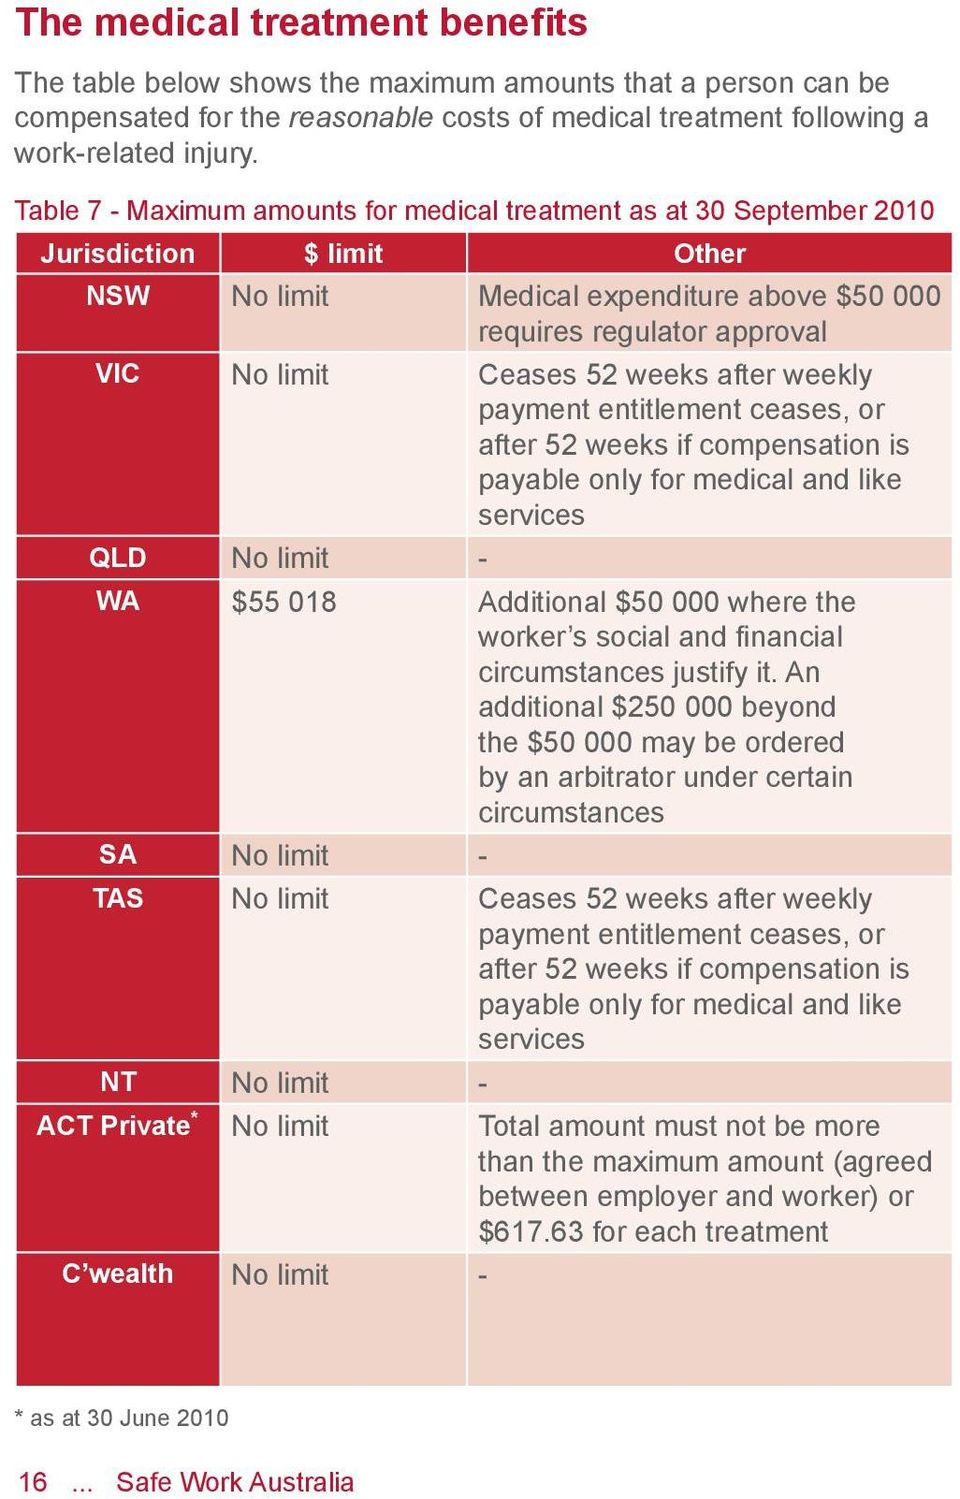 weeks after weekly payment entitlement ceases, or after 52 weeks if compensation is payable only for medical and like services QLD No limit - WA $55 018 Additional $50 000 where the worker s social